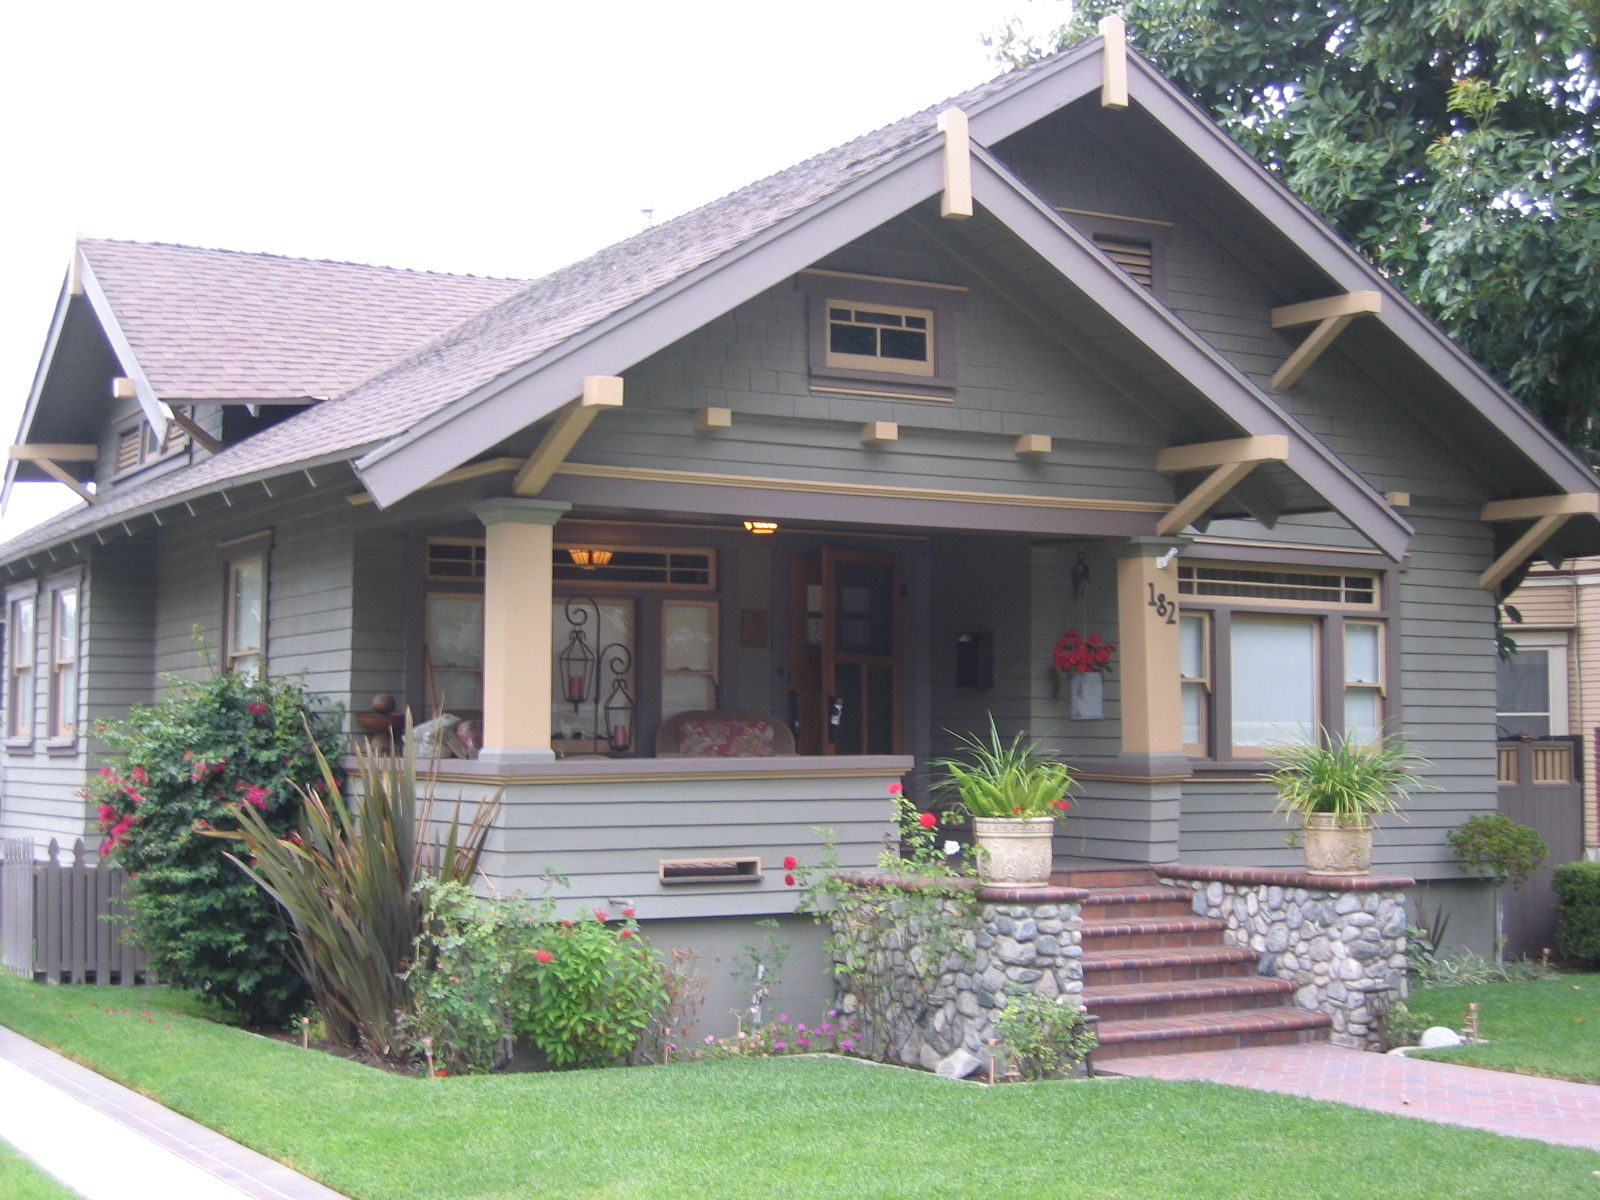 Craftsman House Pictures Craftsman Home Style Sight